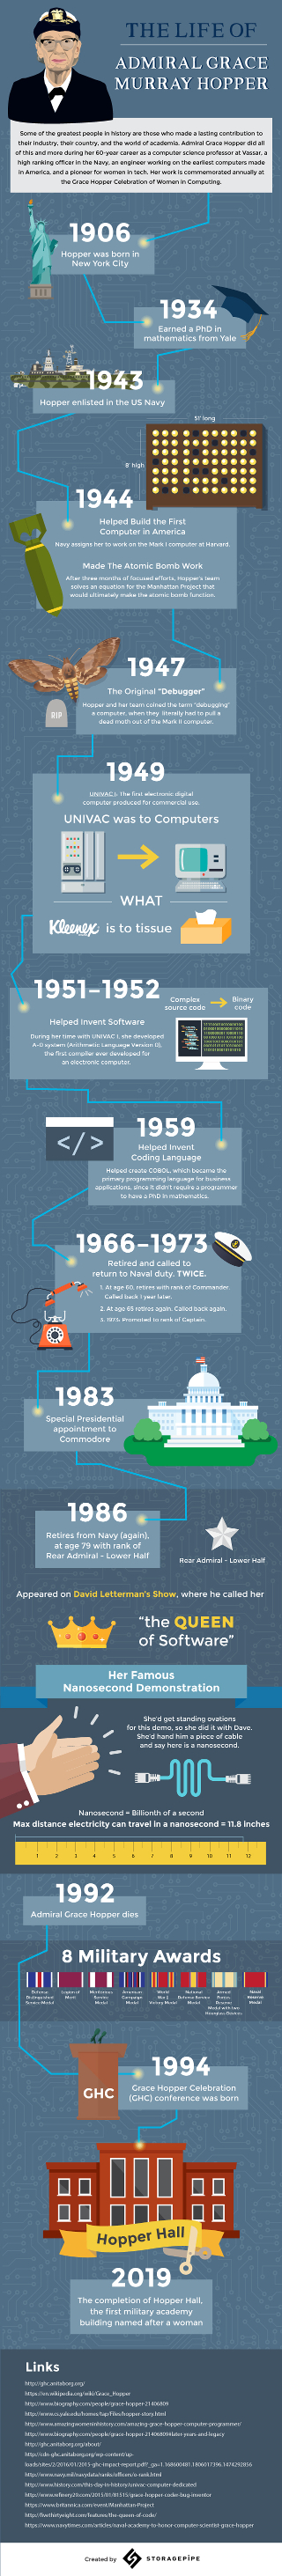 Infographic courtesy of Storagepipe